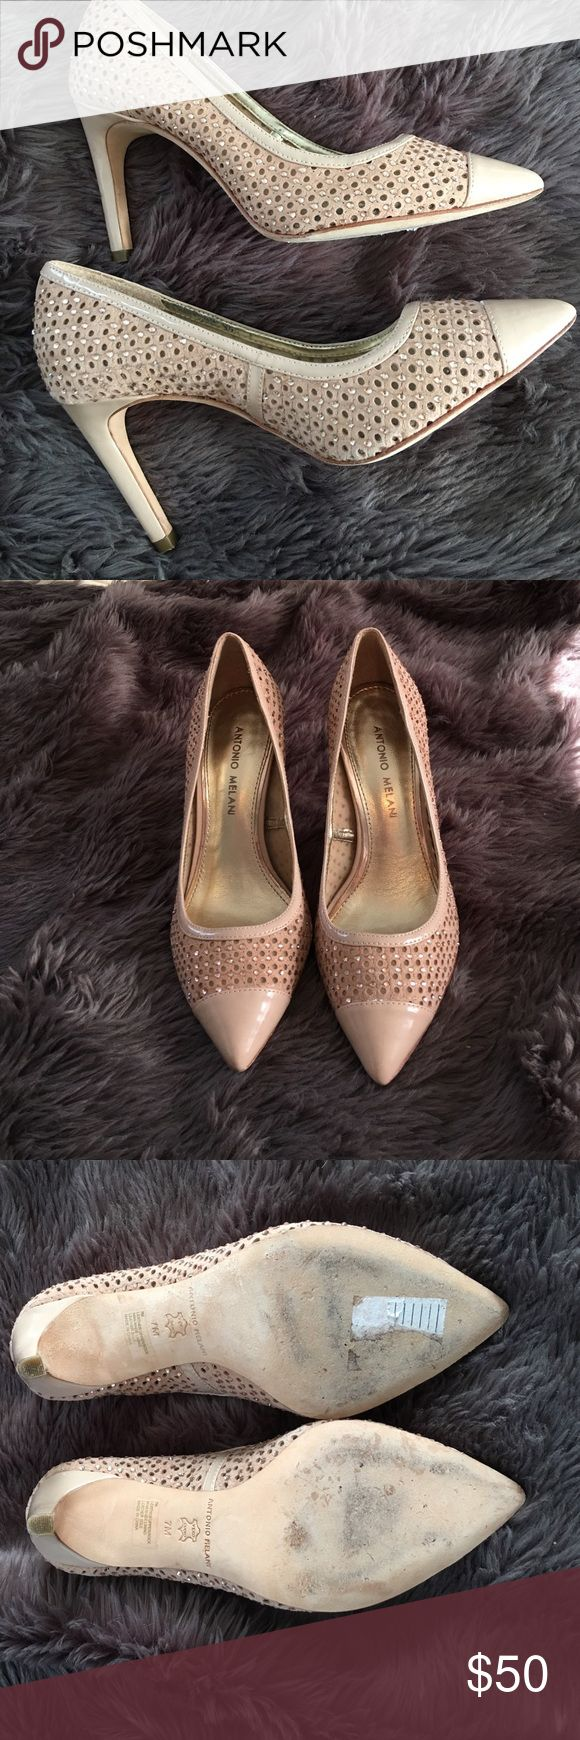 Antonio Melani heels Gorgeous nude heels with rhinestone detail. I love these heels but I never get to wear them. Only worn a handful of times. Very well made as you would expect form Antonio Melani. ANTONIO MELANI Shoes Heels